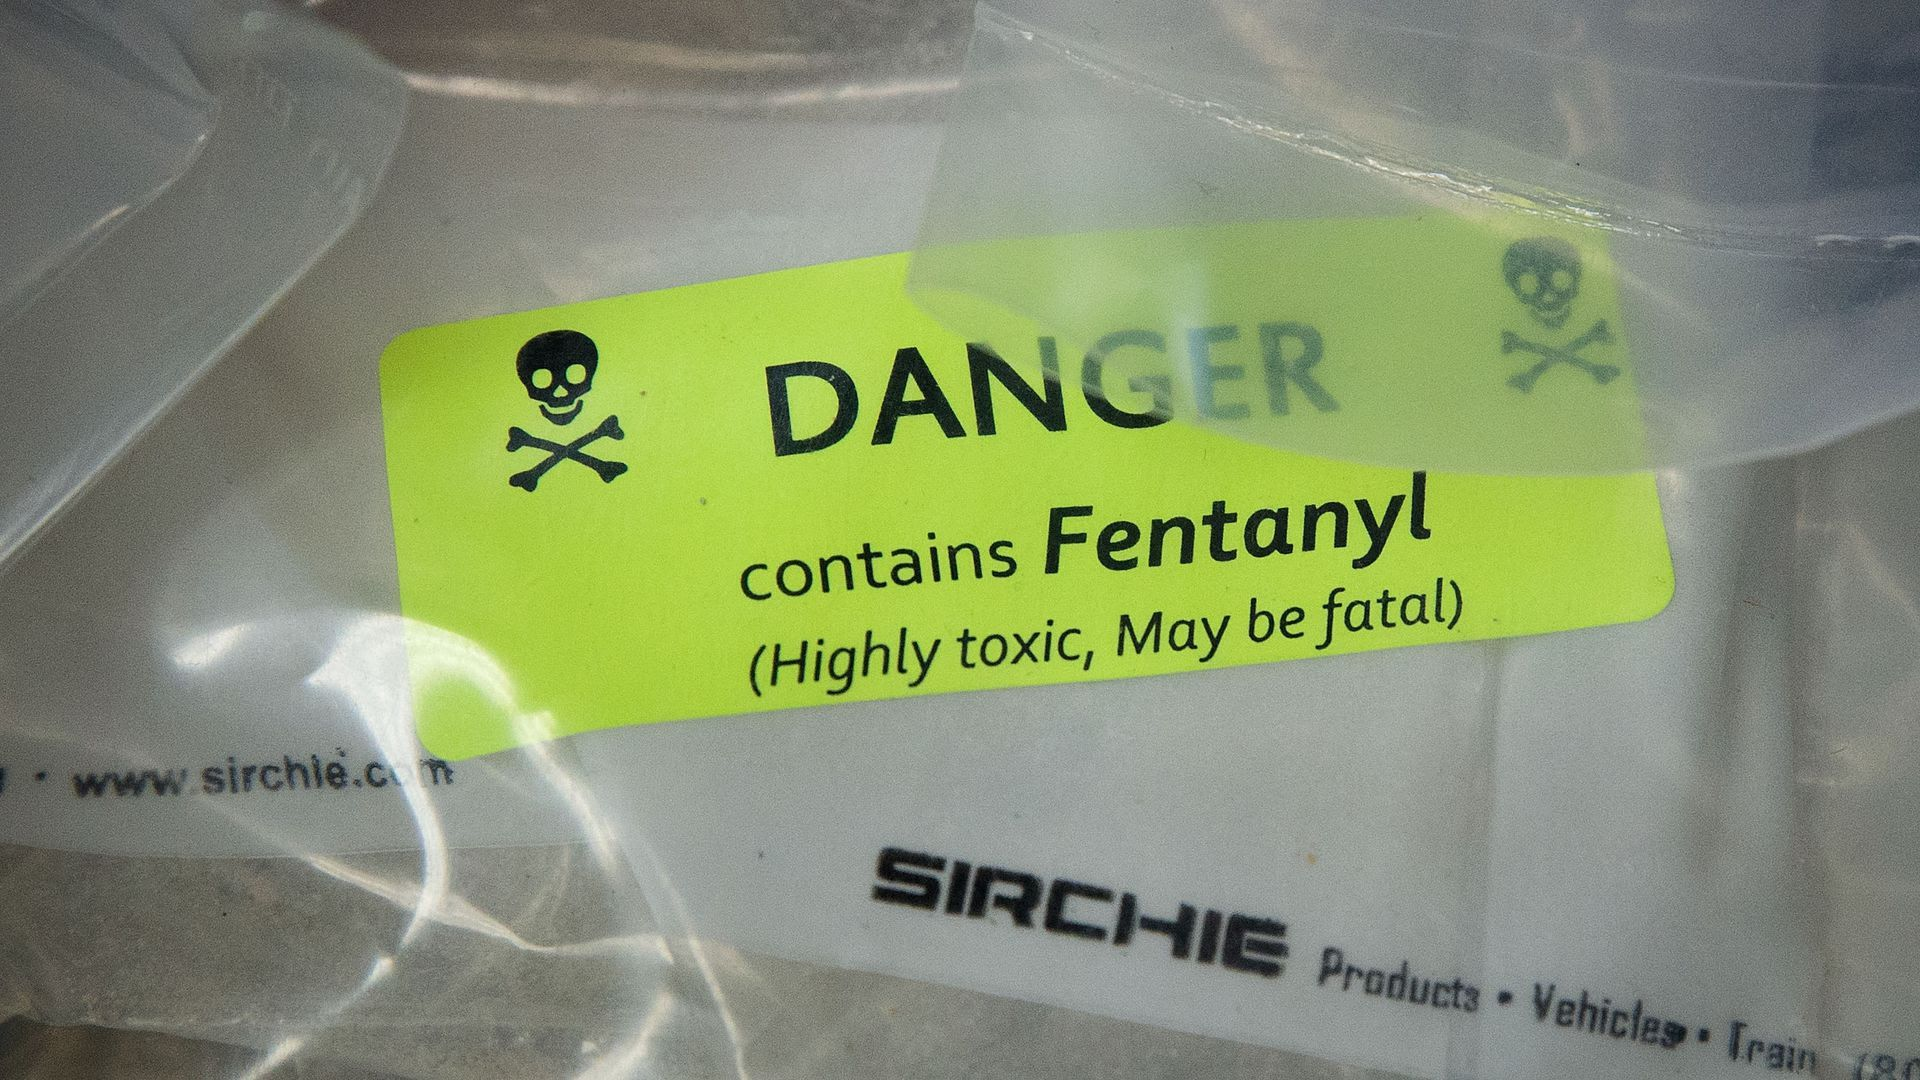 As the opioid crisis deepens, deadly fentanyl from China